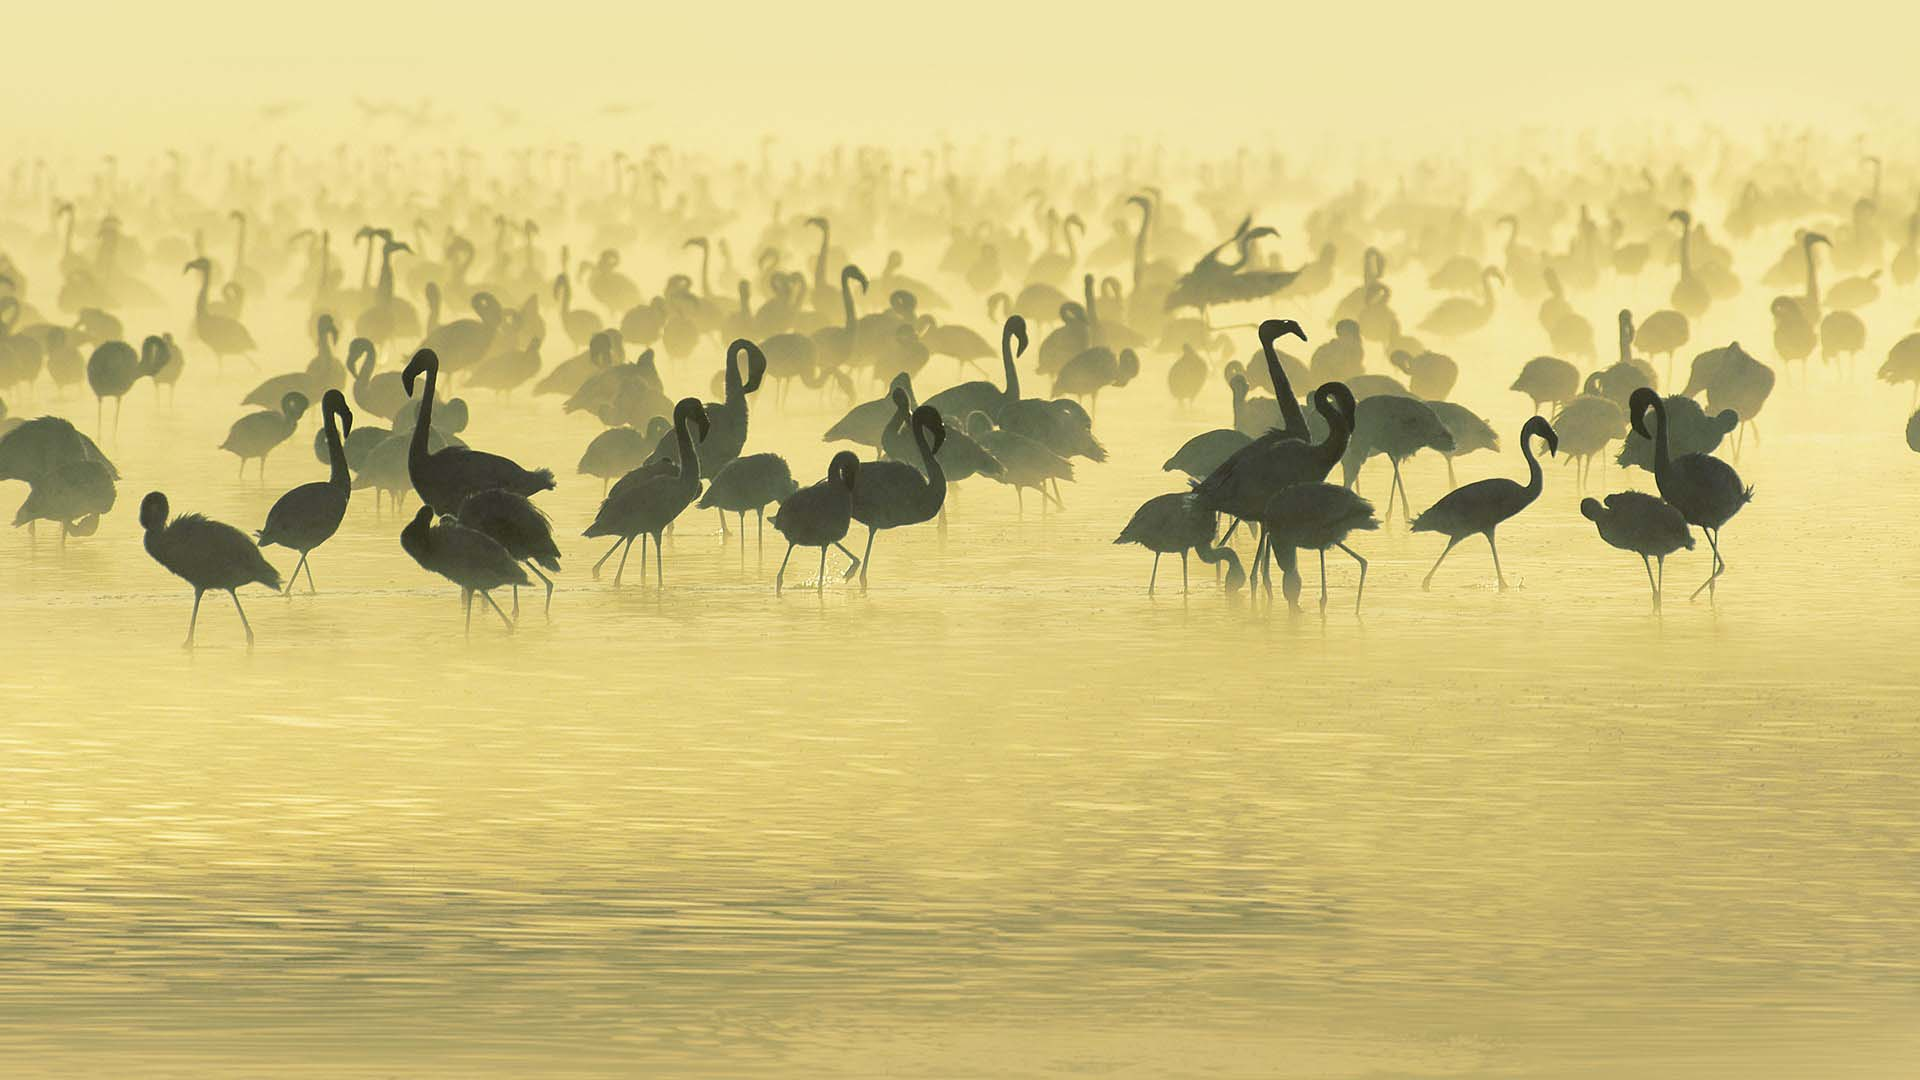 Birds-and-Animals-South-Africa-HD-Background-Animal-Birds-Flamingos-South-Africa-River-HD-Wallpa-wallpaper-wp3603341